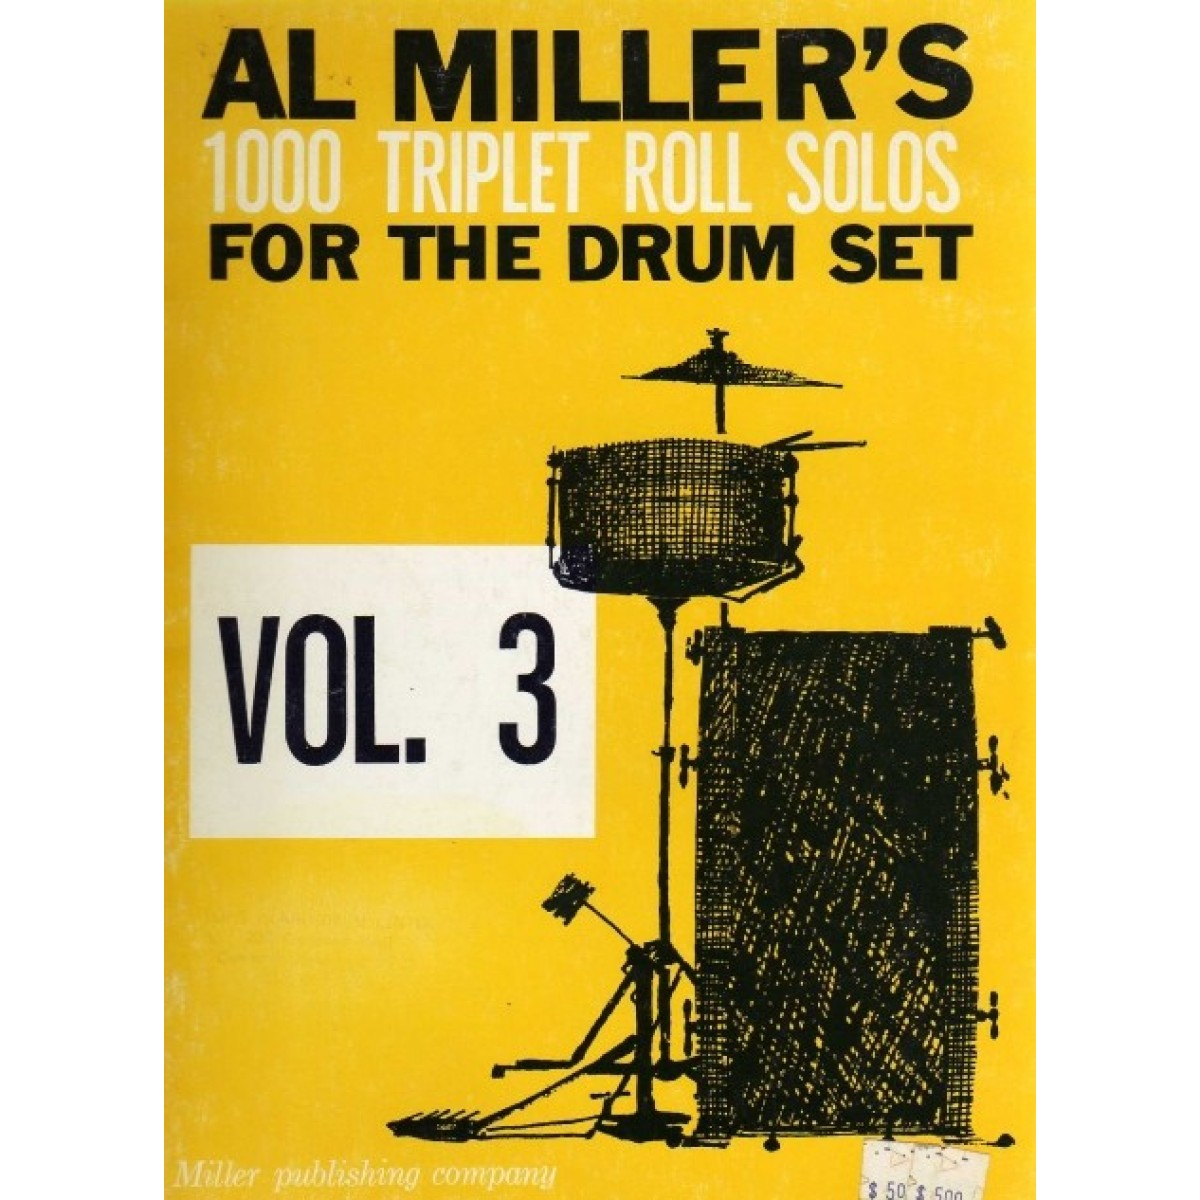 1000 Triplet Roll Solos For The Drum Set Vol. 3